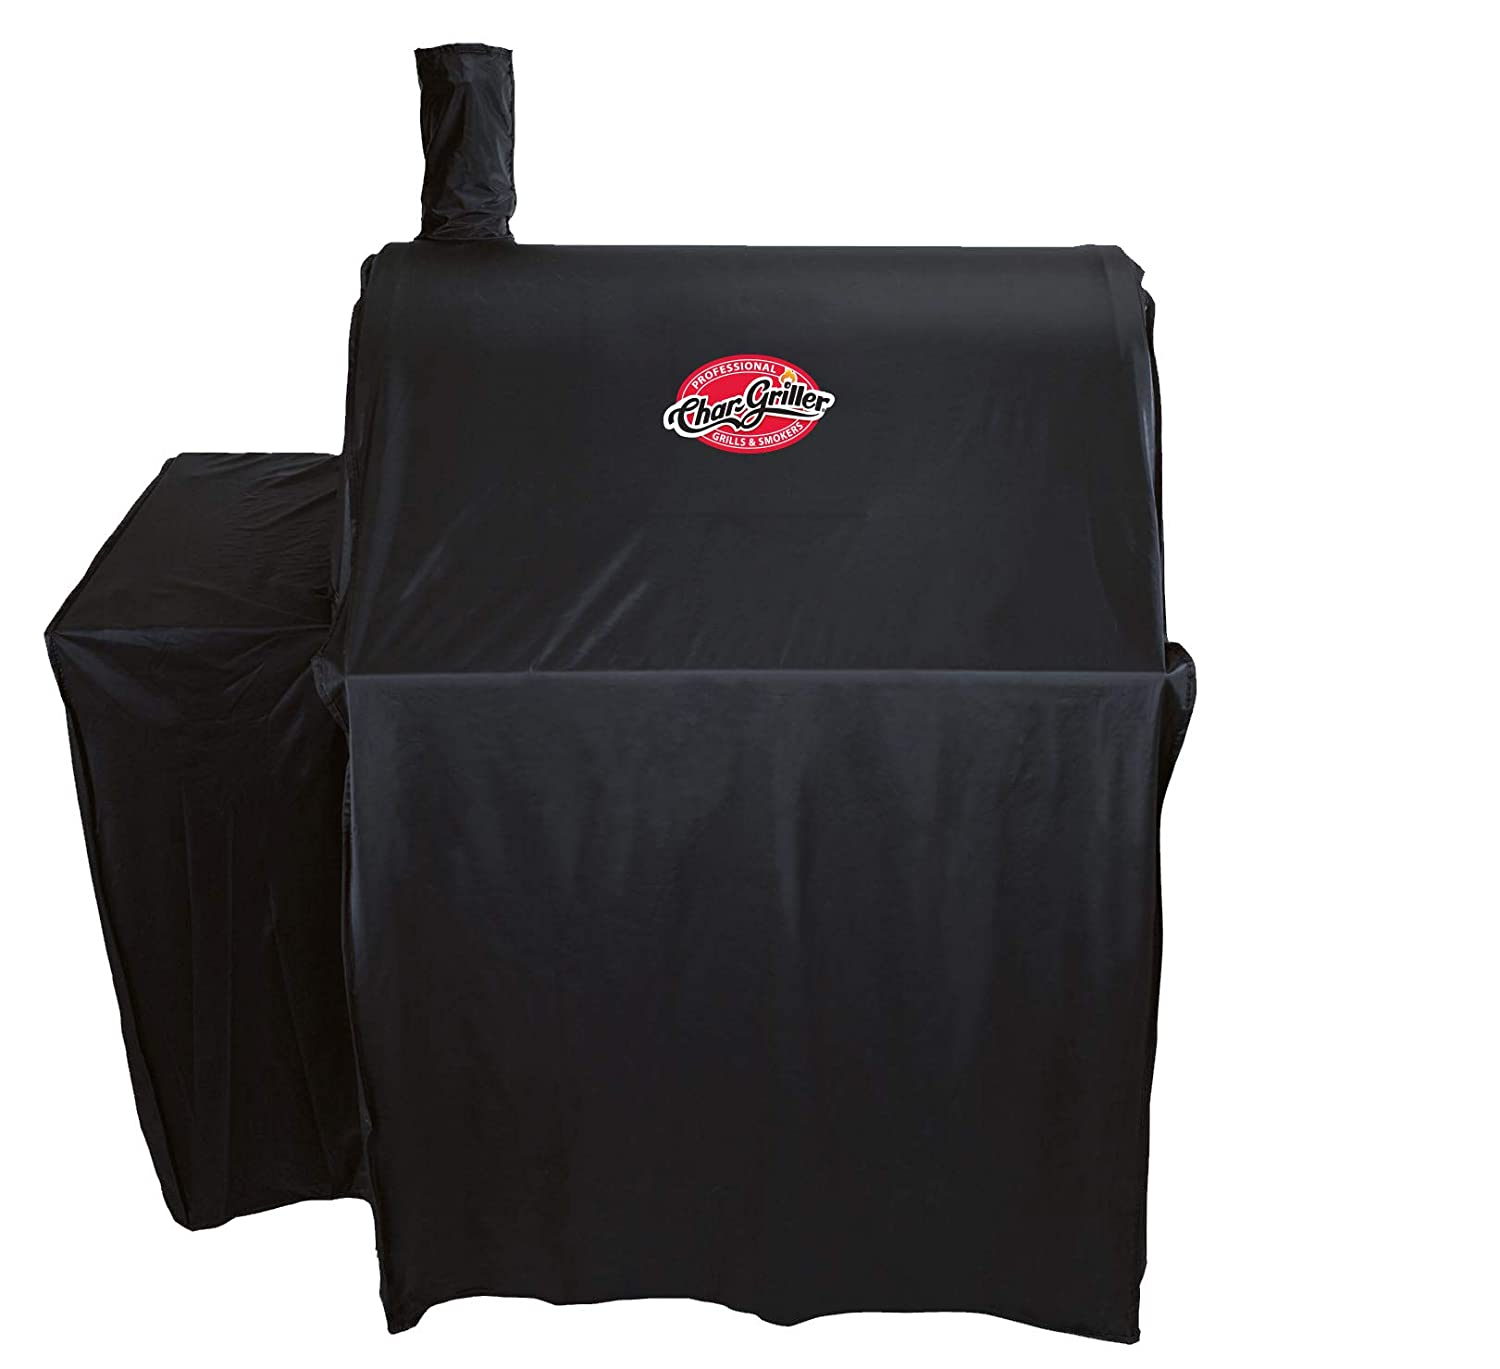 Char-Griller 5555 Grill Cover, Fits 2121, 2828 and all Char-Griller Smokers A & J Manufacturing Inc.